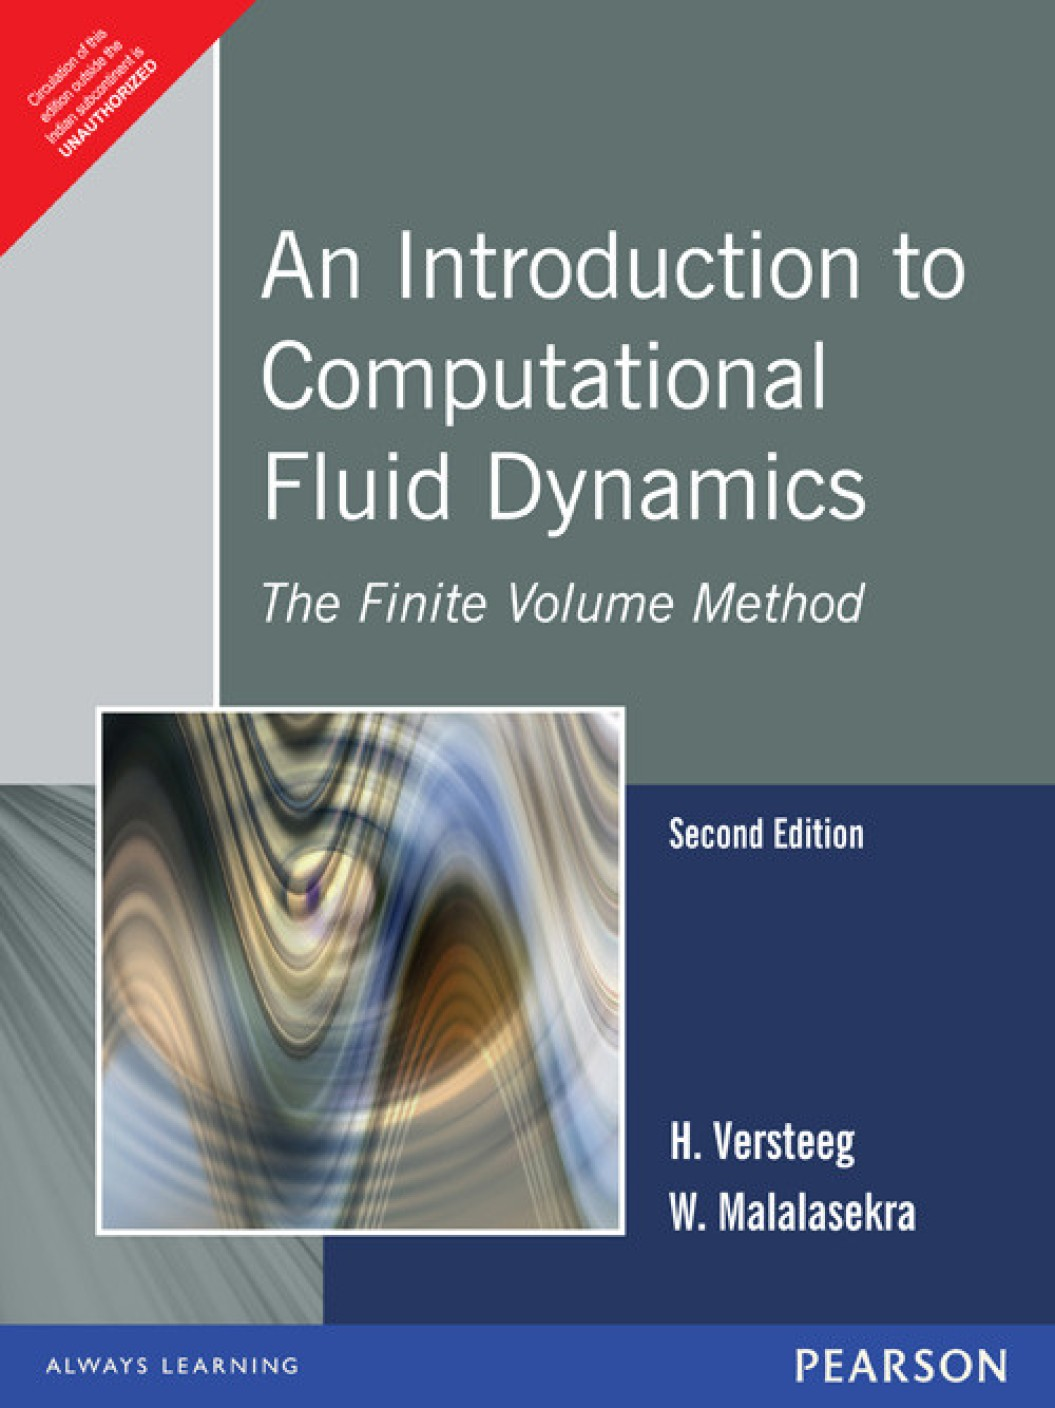 EL513 - Introduction to Computational Fluid Dynamics - ASME